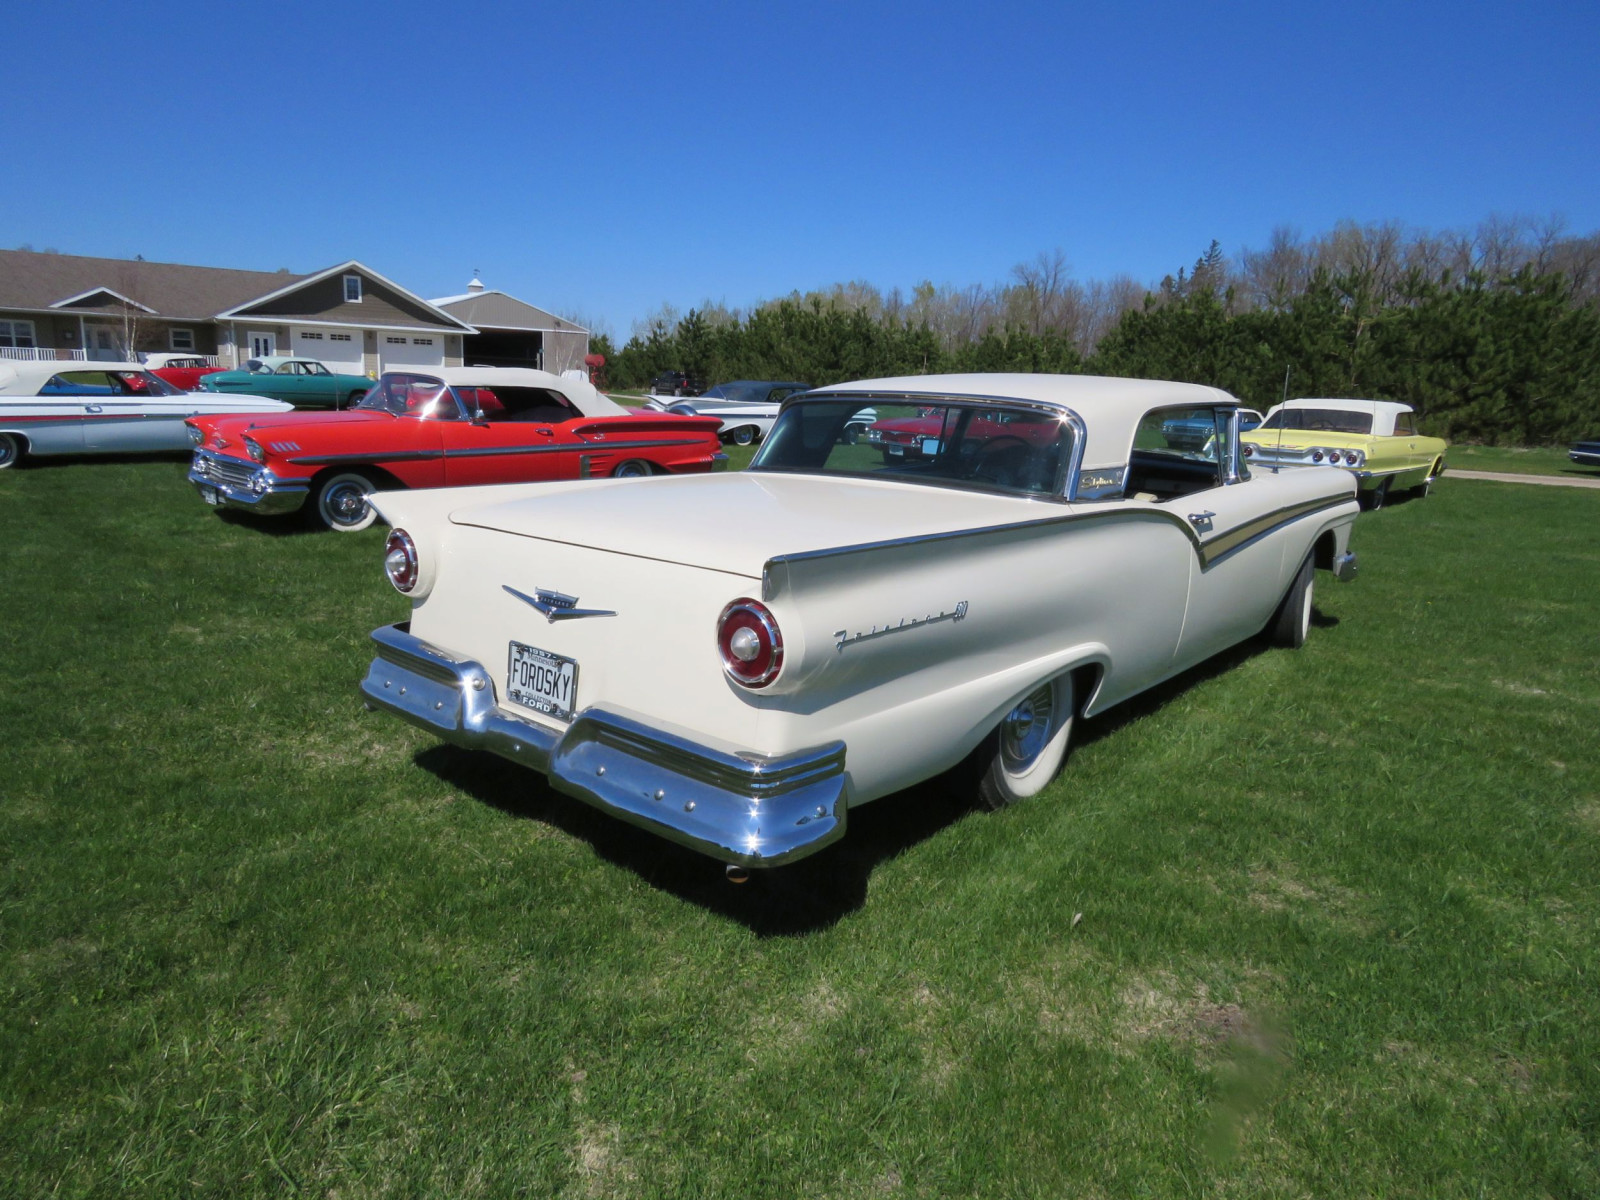 1957 Ford Fairlane 500 Skyliner Retractable Hardtop - Image 6